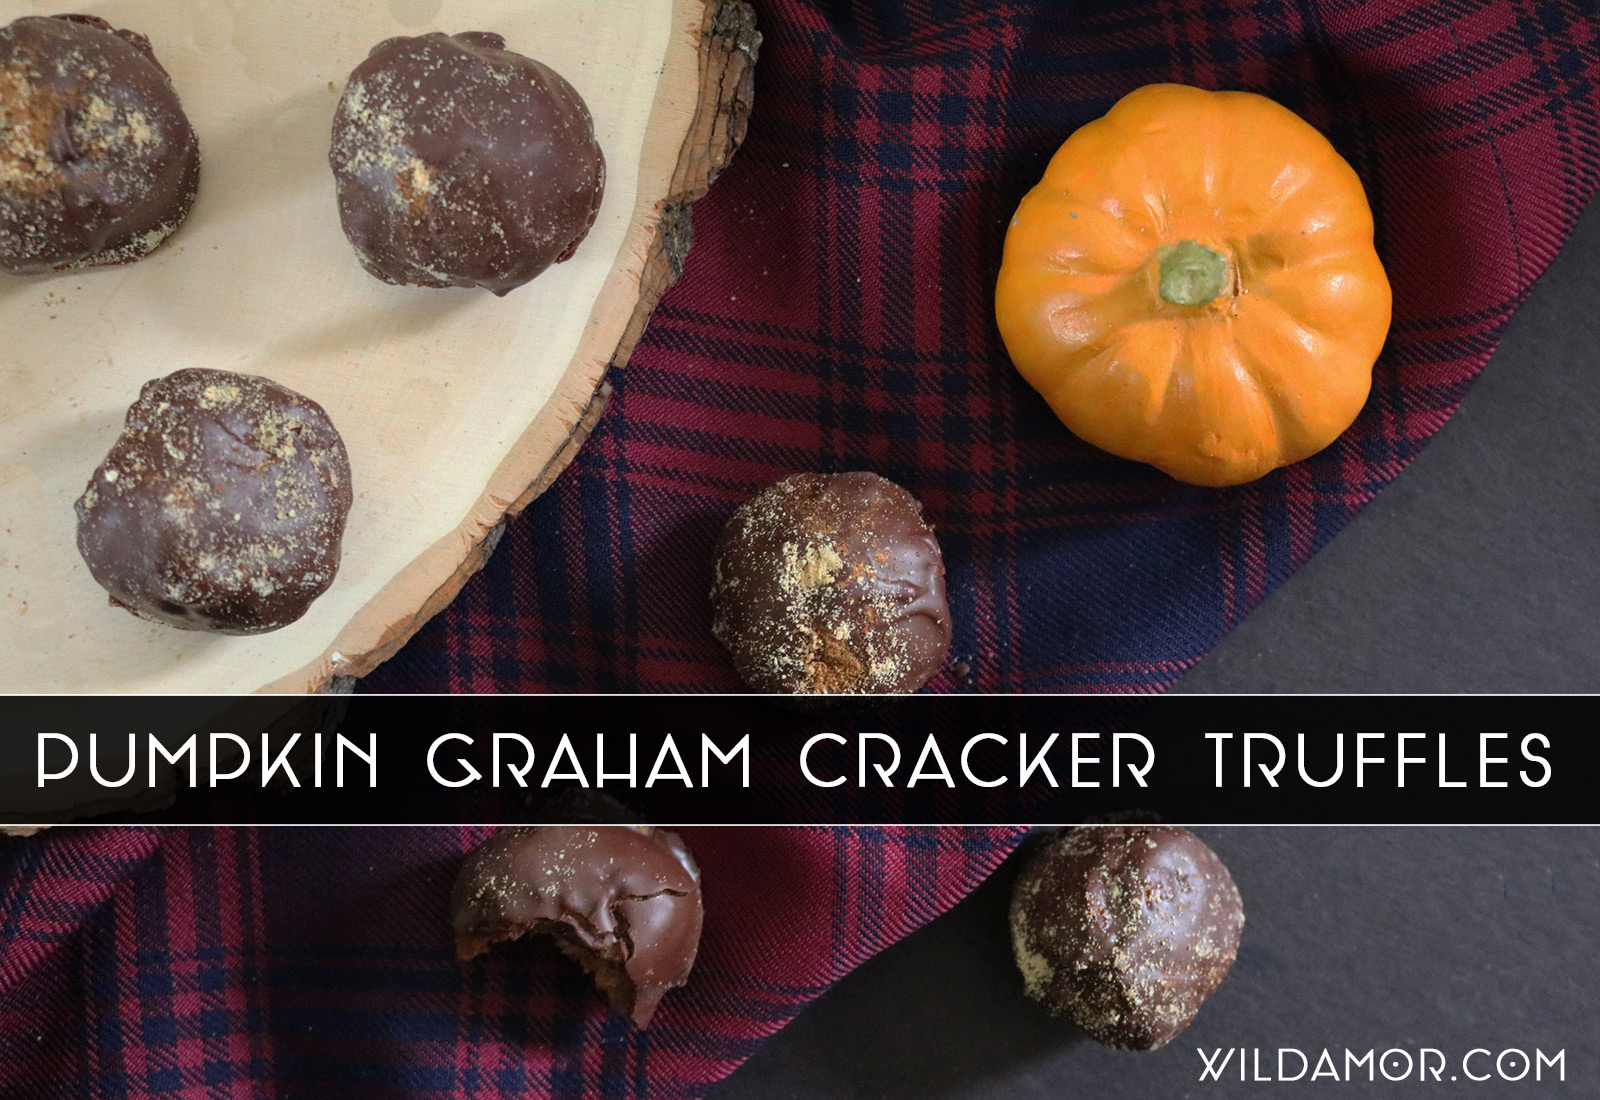 Pumpkin Graham Cracker Truffle Recipe